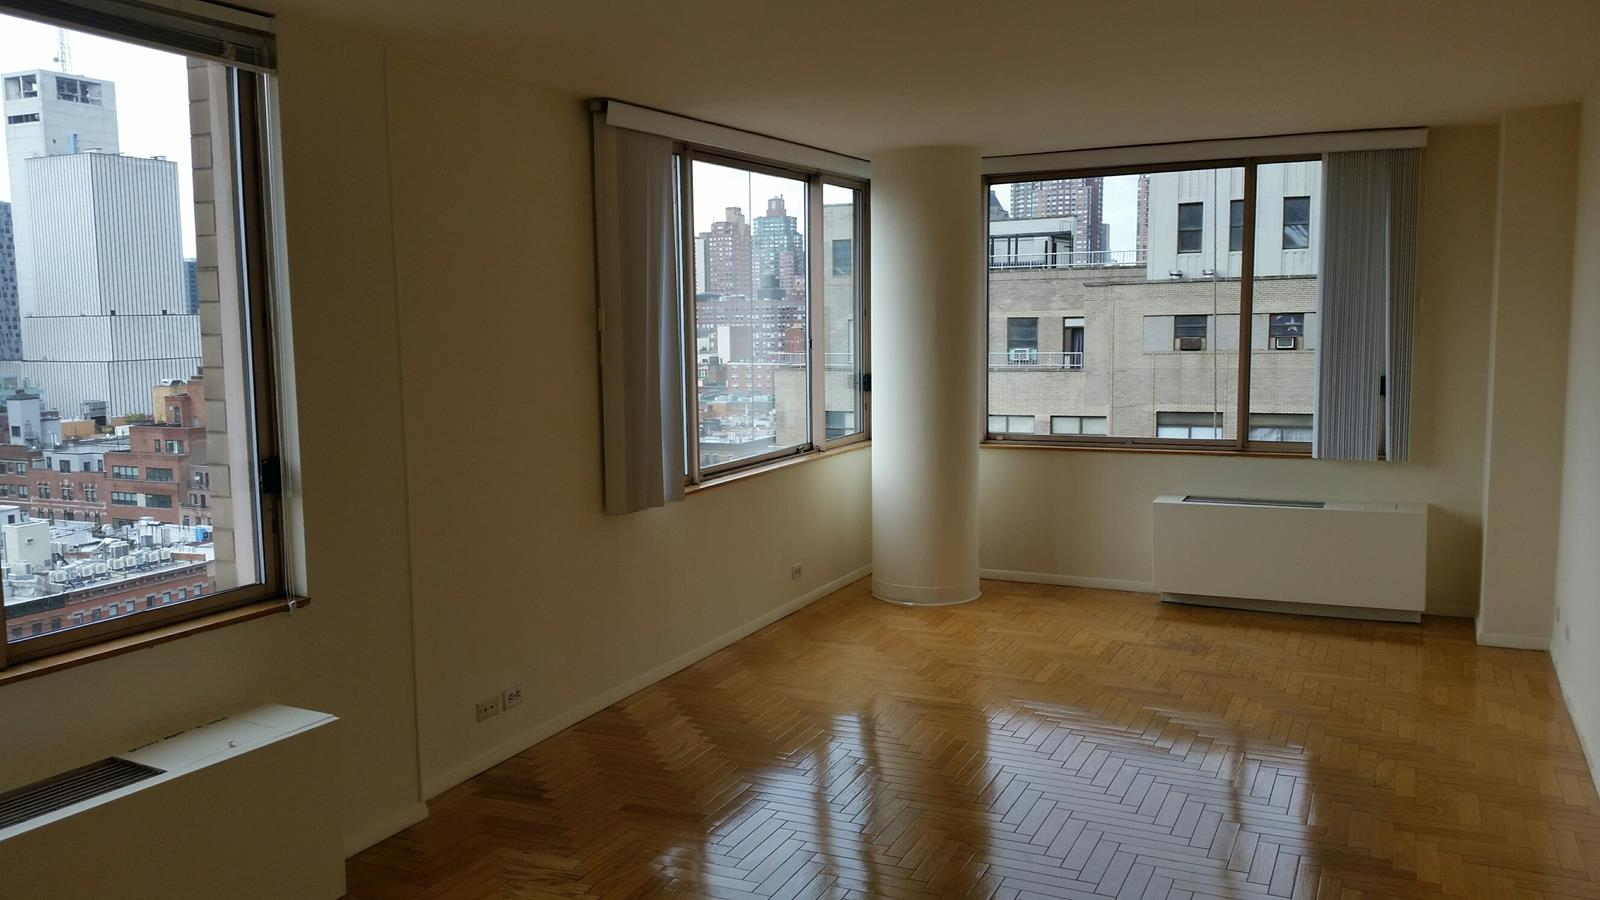 Spacious 2 B/R, 2 Bath fully renovated apartment.  W/D, wood floors, spacious closet space.NW exp.  F/S building with pkg and health club avail.  Near all transp, restauants, theater, shopping, Lincoln Center and Central Park.Avail. immed. SPONSOR UNIT...NO BOARD APPROVAL.